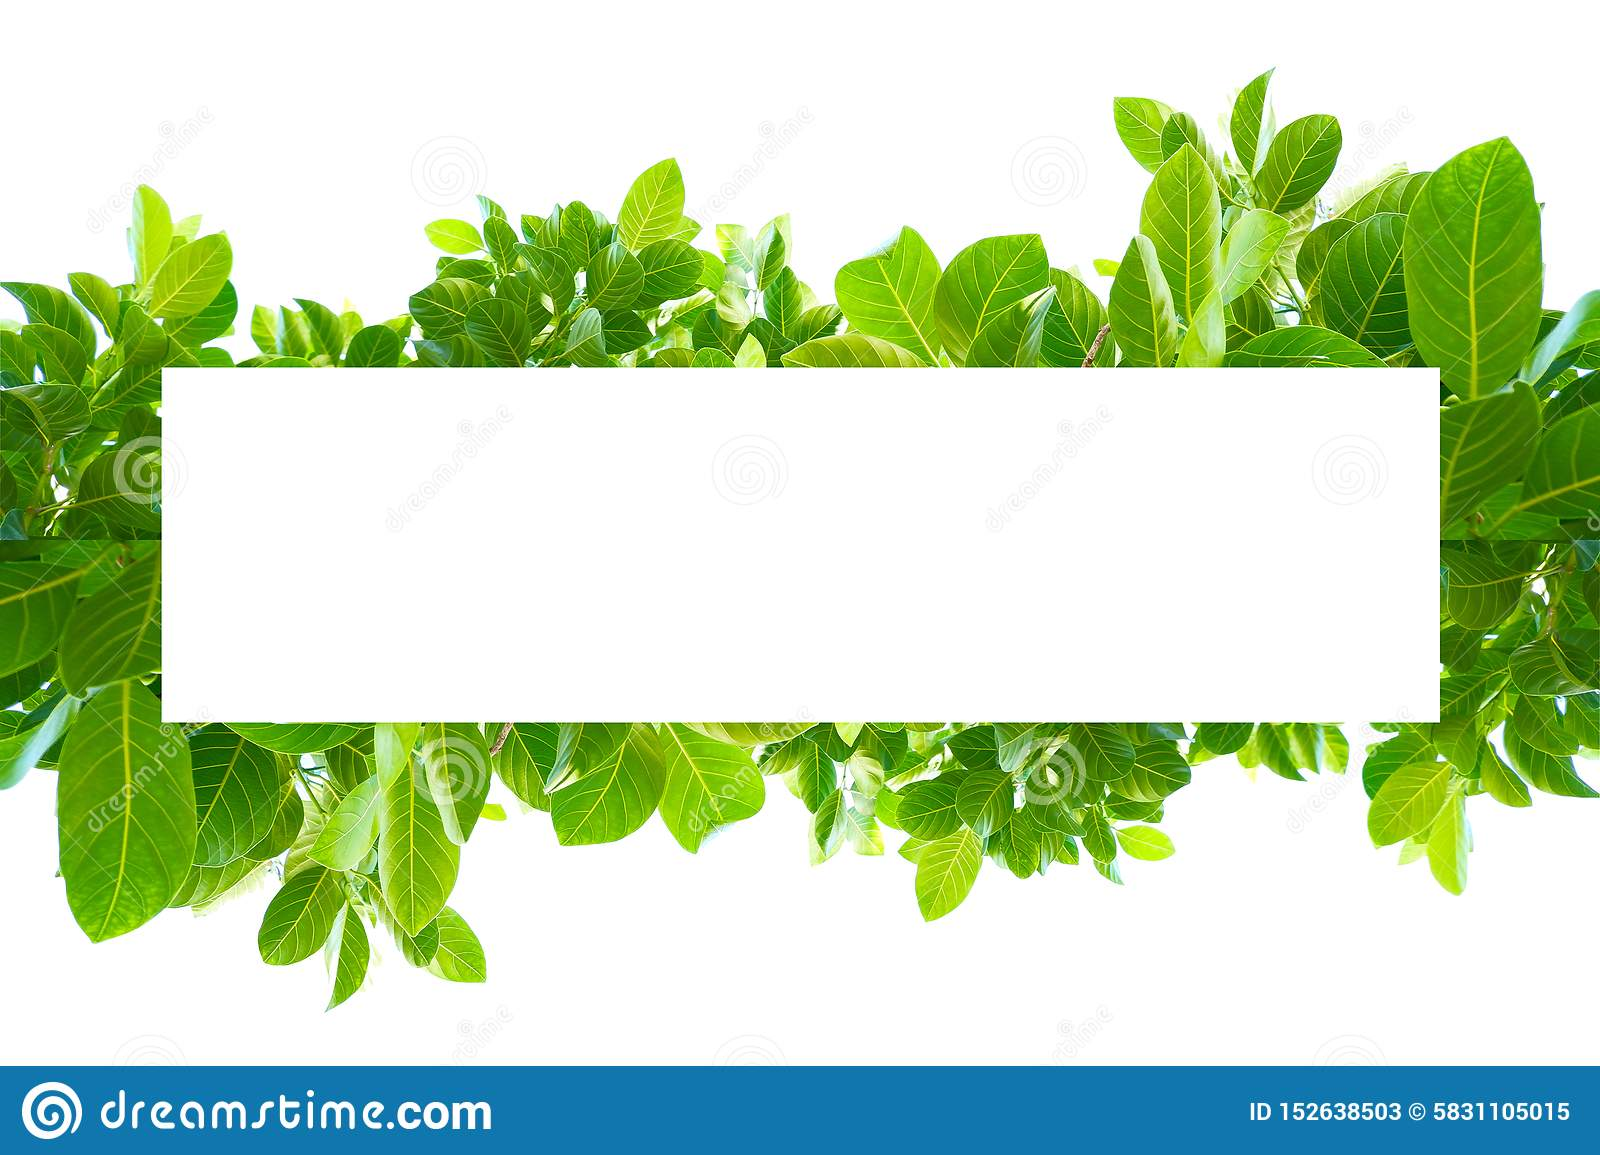 Asian tropical green leaves that isolated on a white background